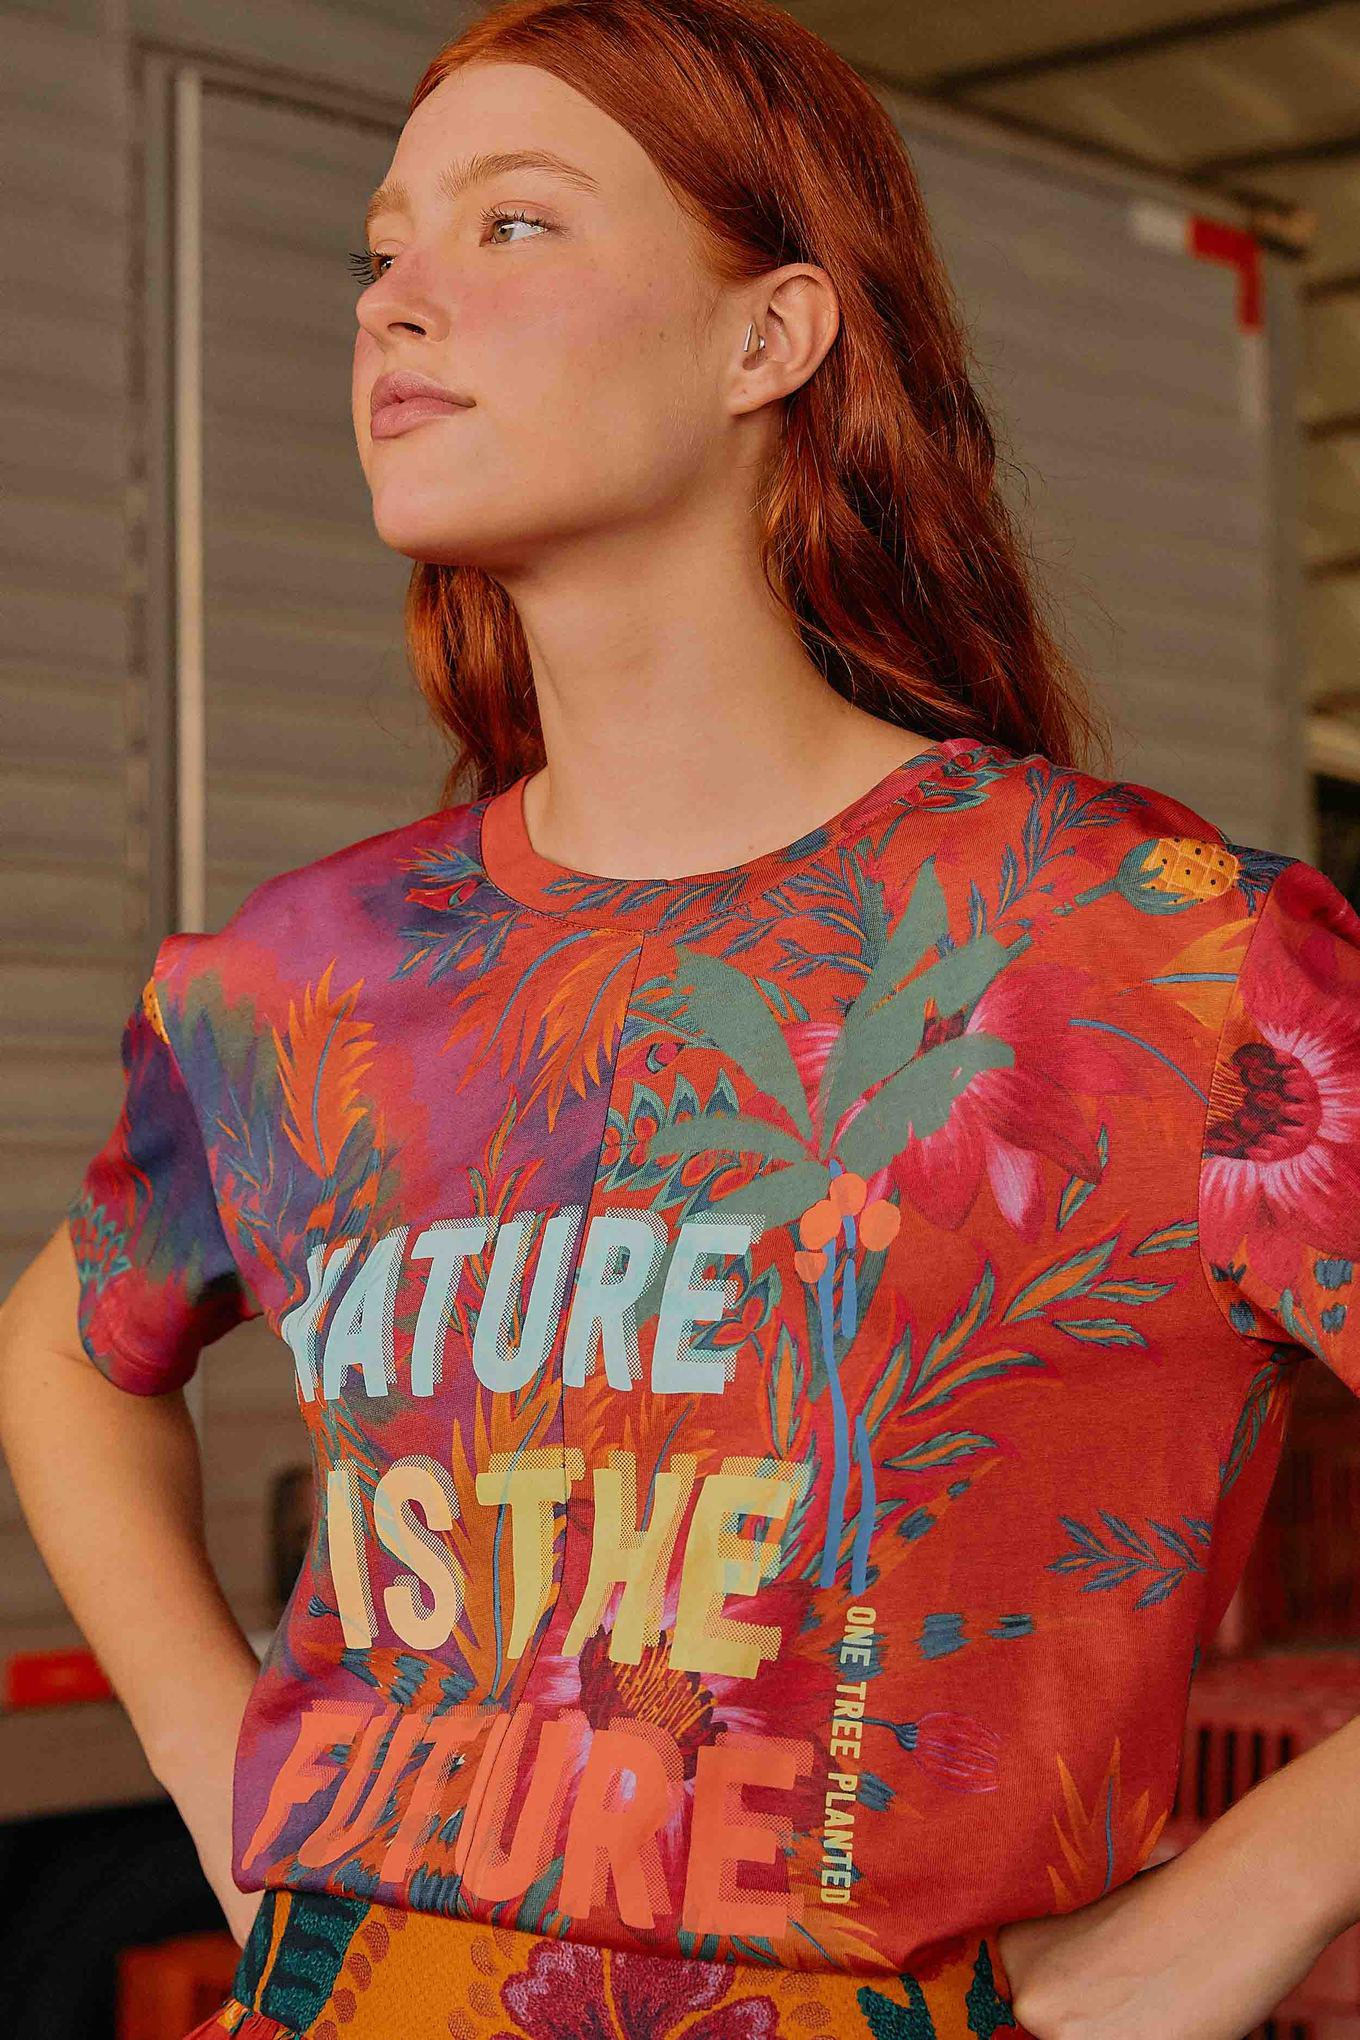 NATURE IS THE FUTURE T-SHIRT